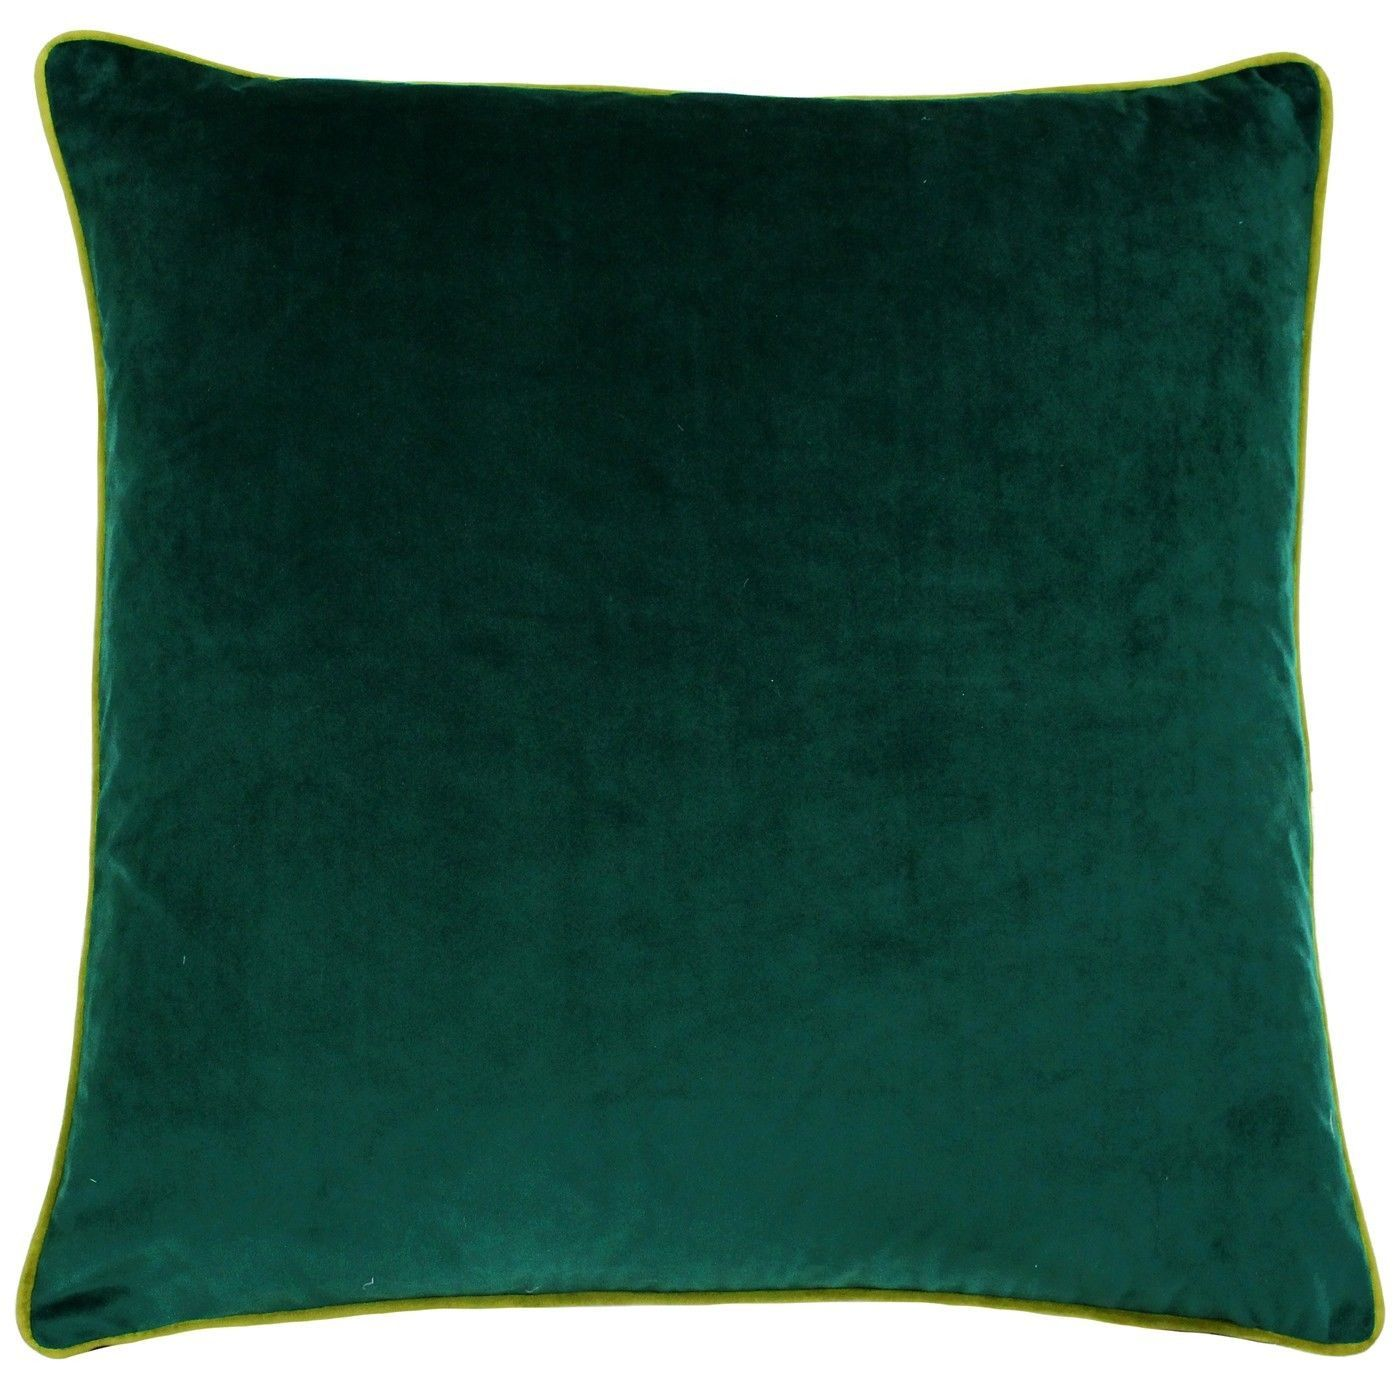 Large velvet feel cushion cover emerald green with moss green piped